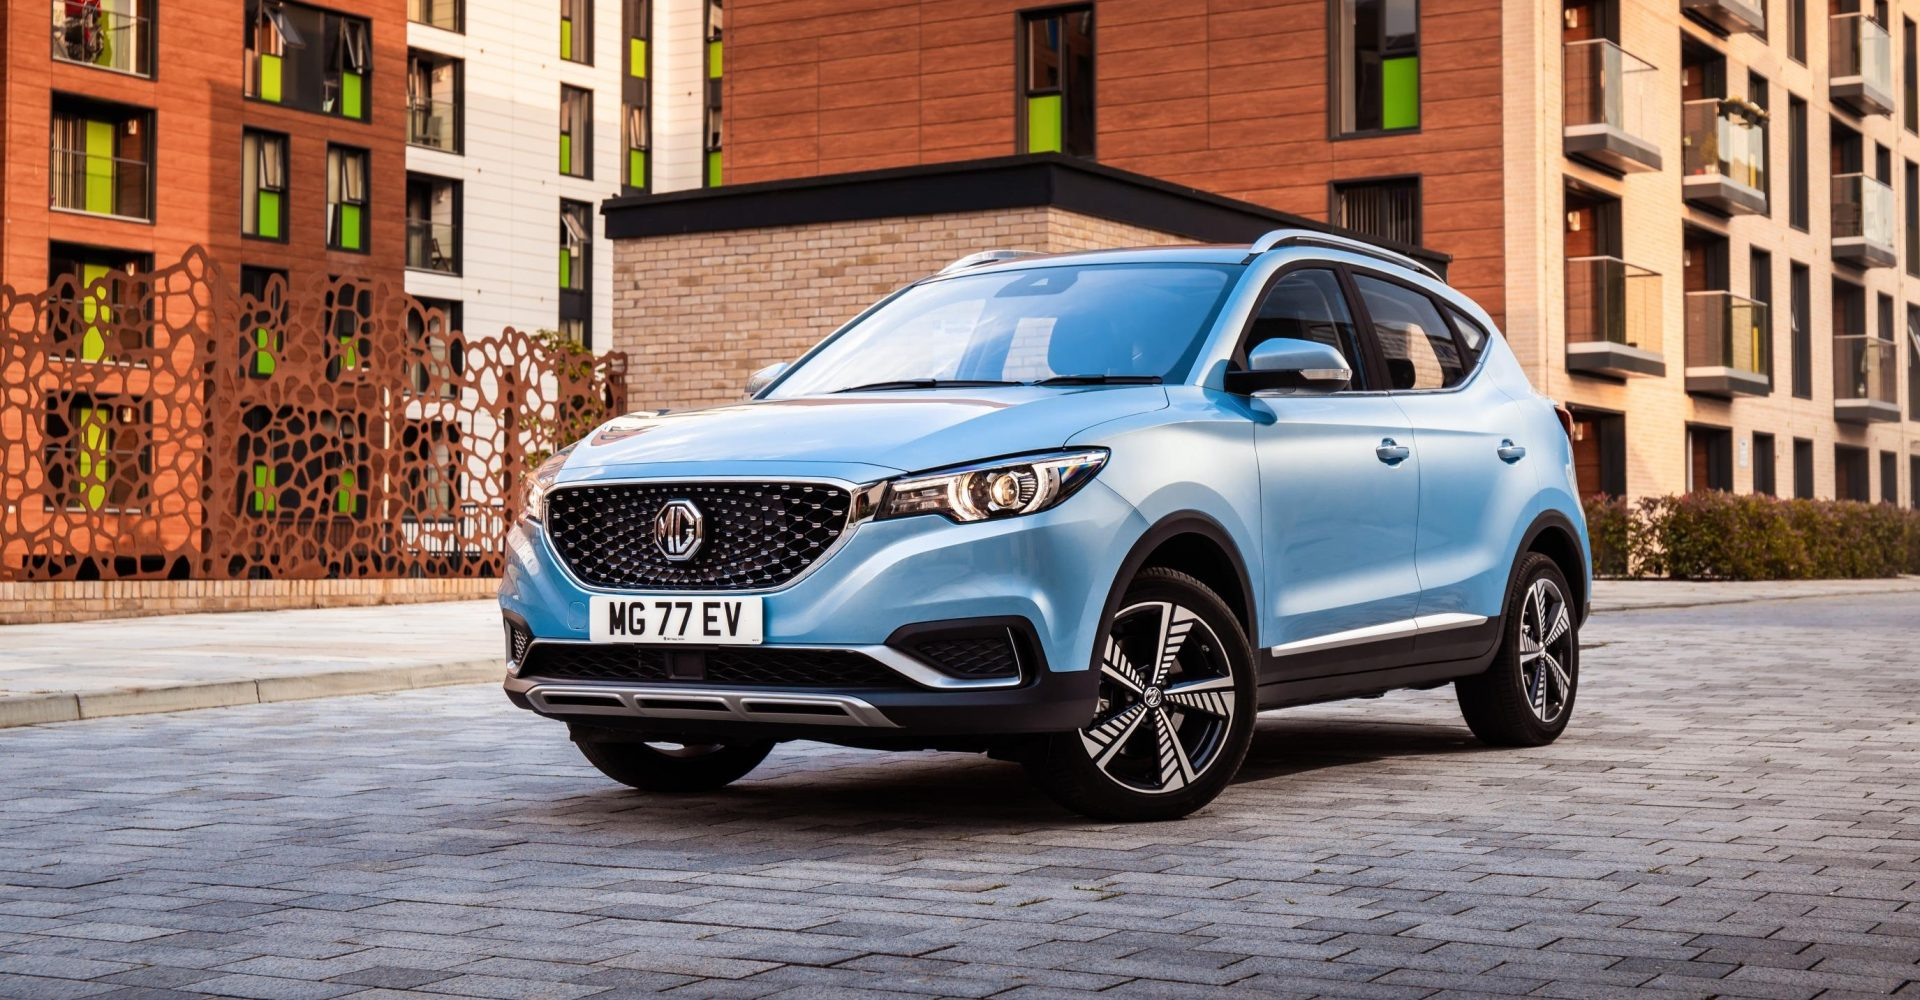 MG is offering 100 ZS EVs to NHS workers on a free six-month loan